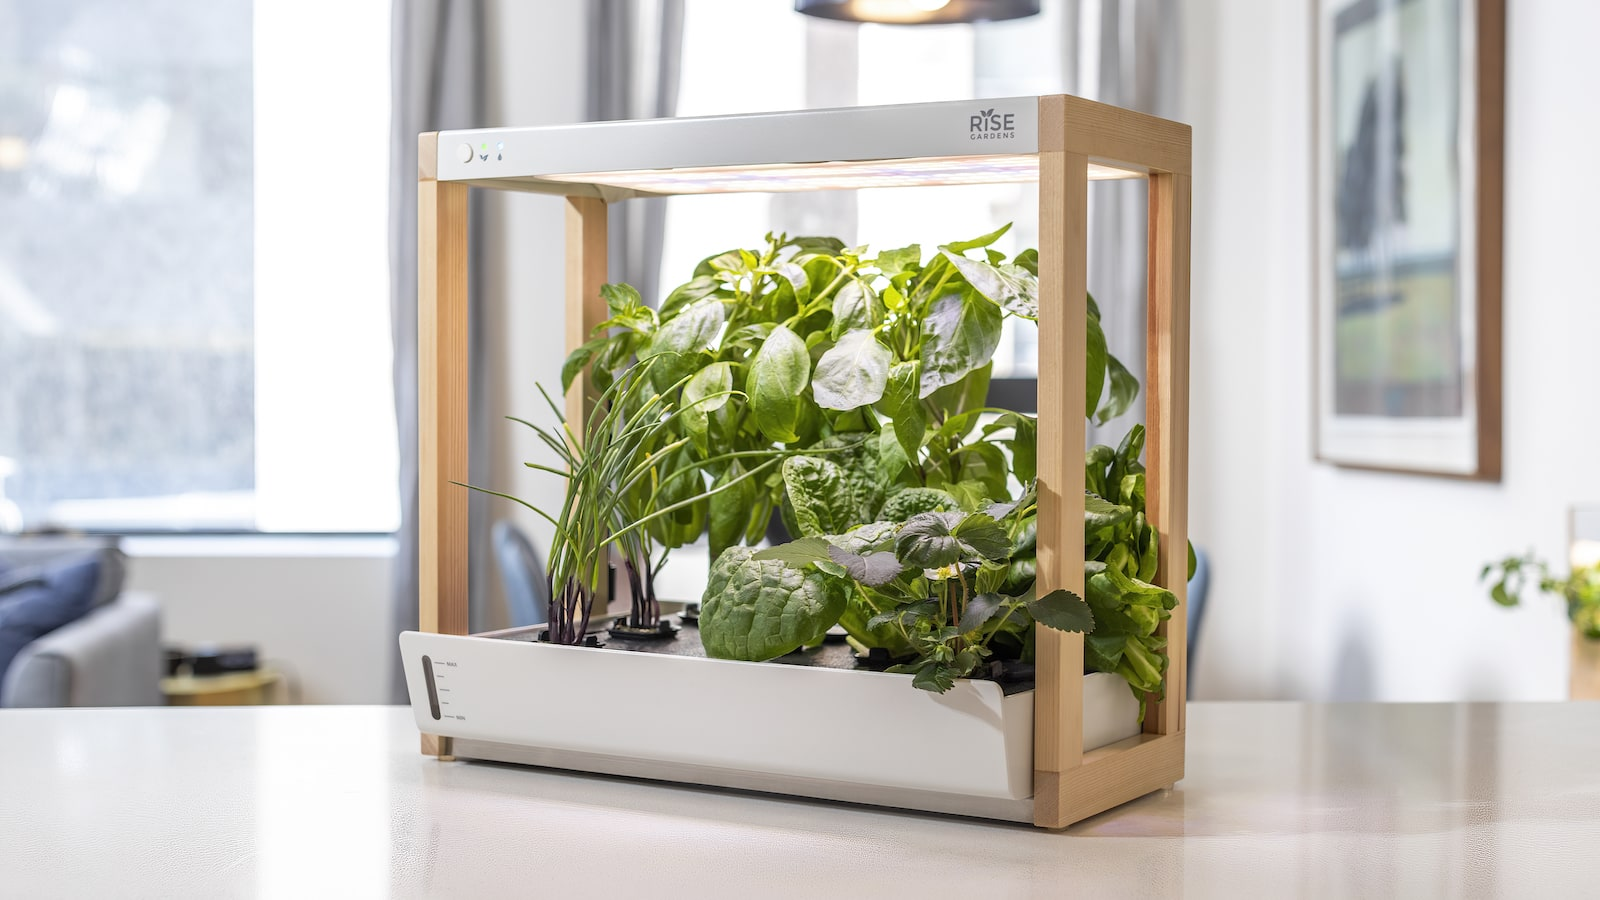 Rise Gardens Personal Rise Smart Garden lets you grow herbs, veggies and leafy greens